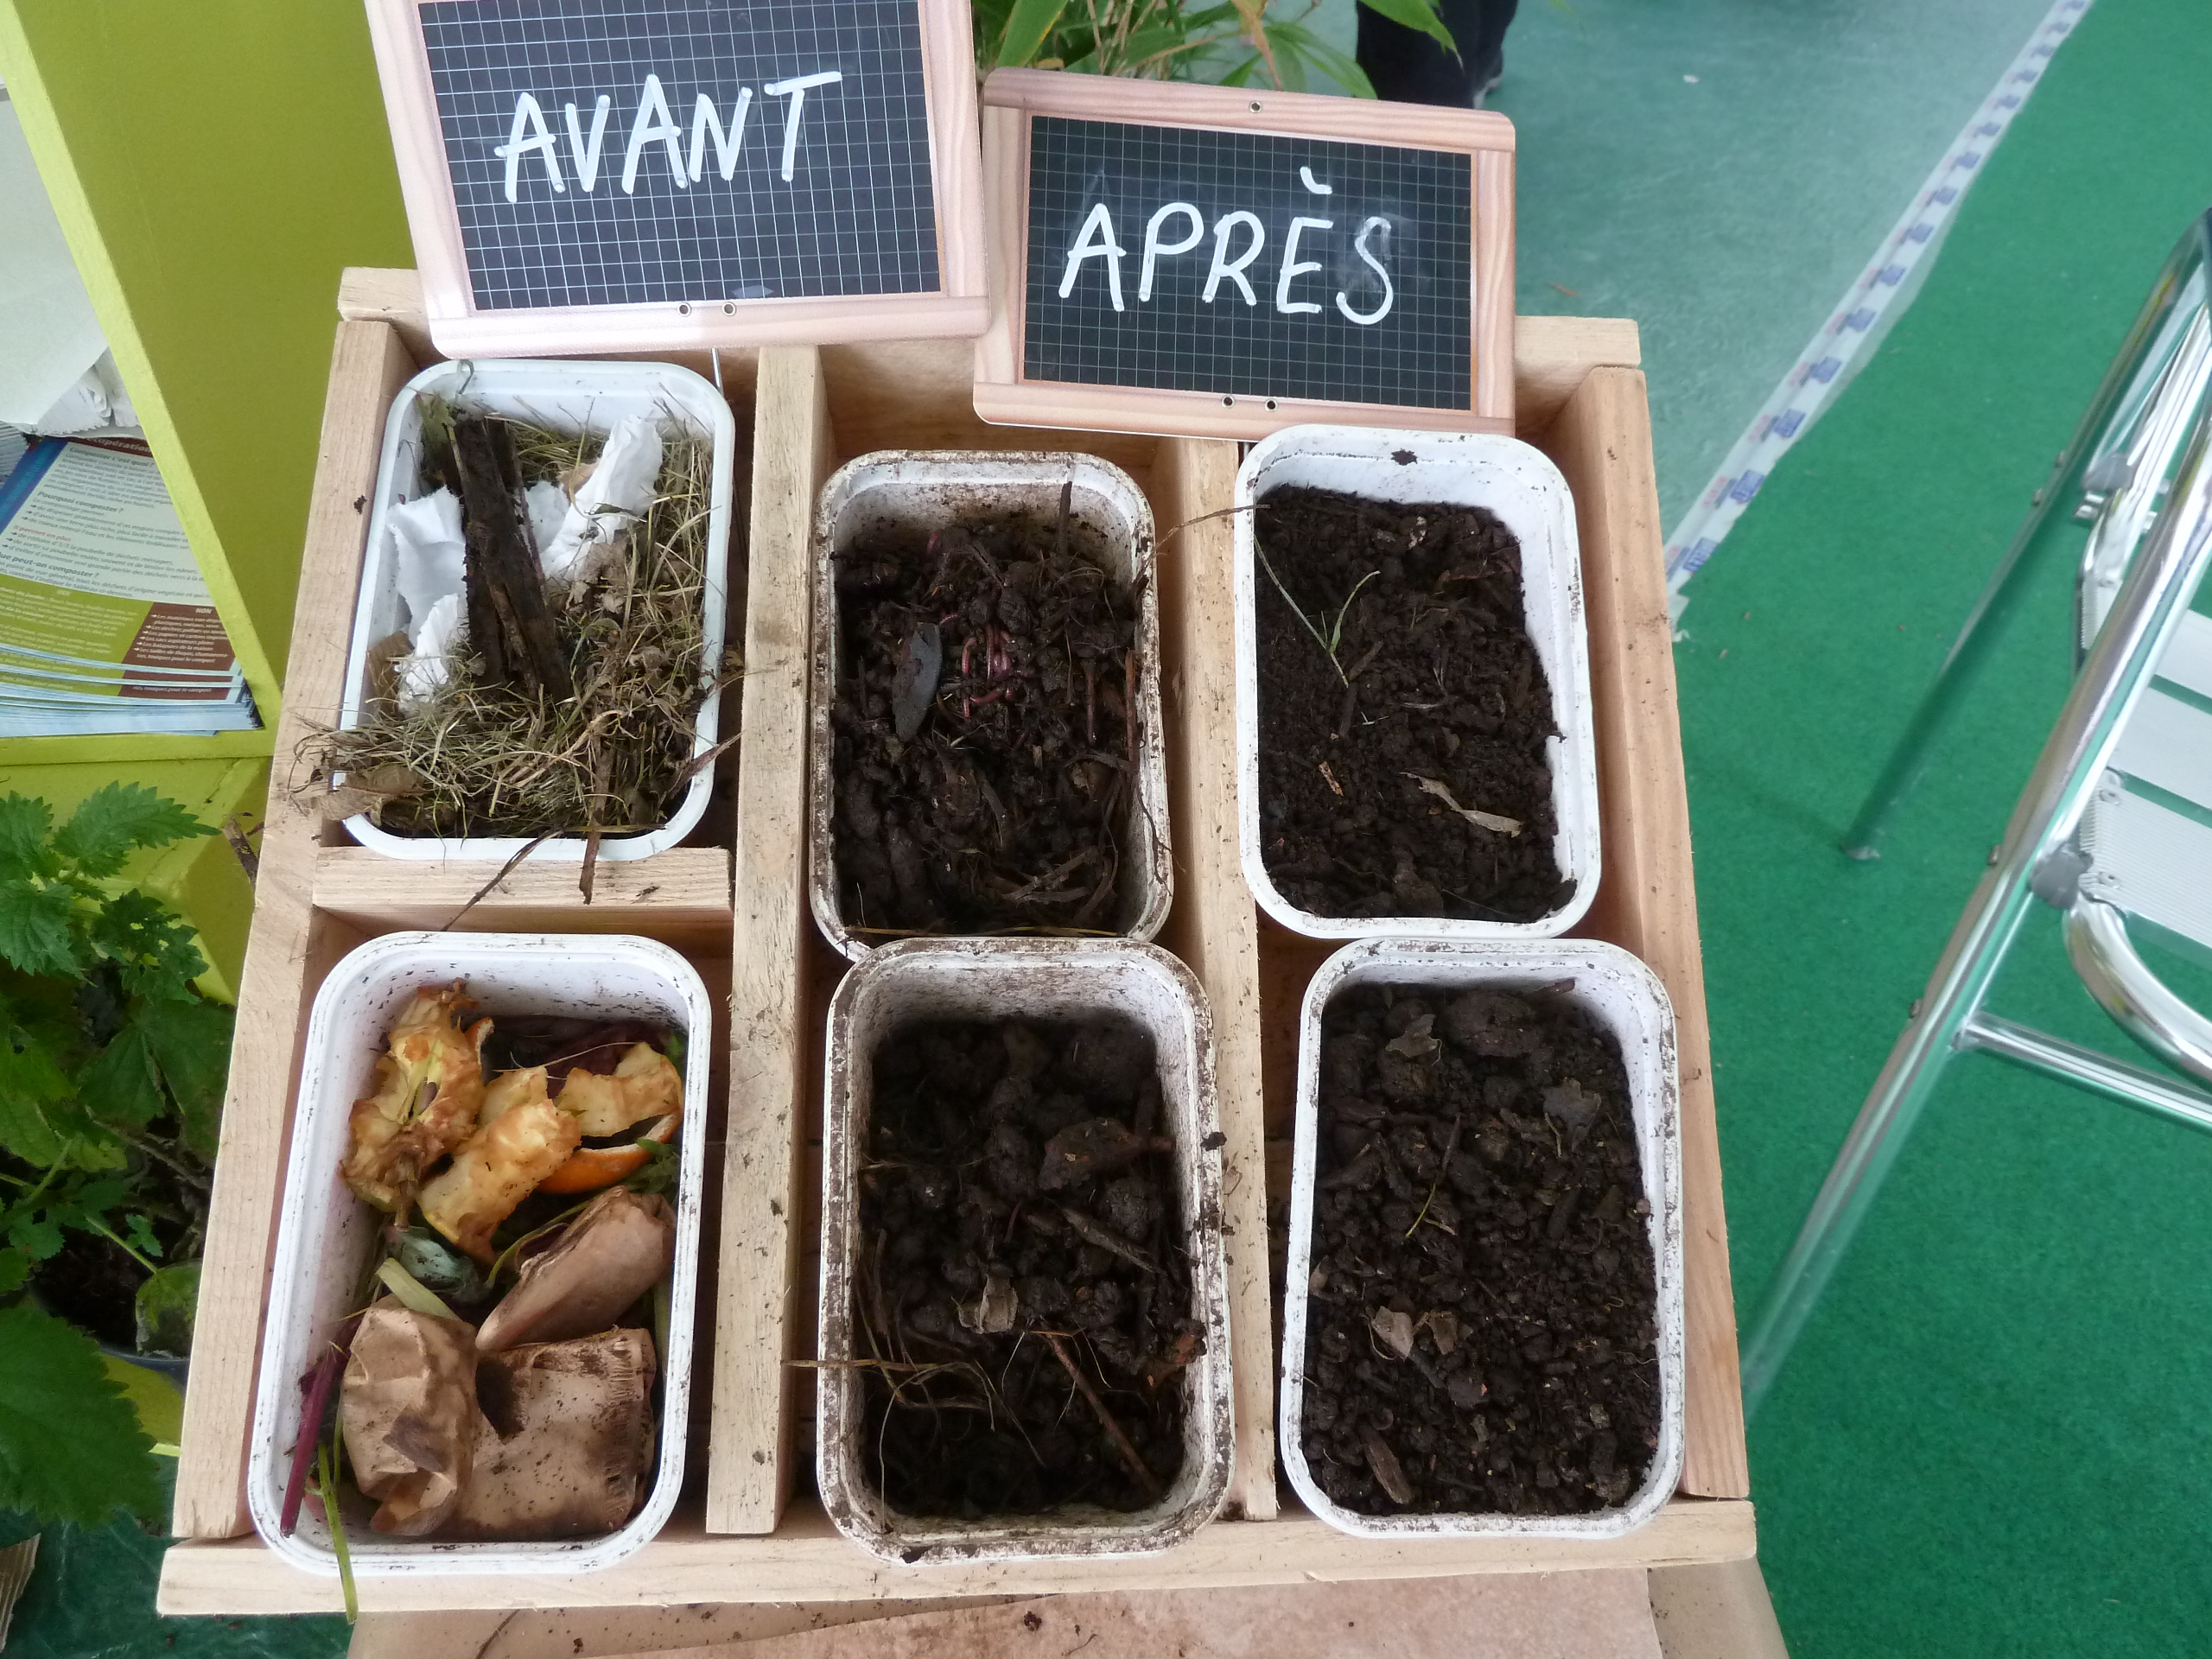 Comment enrichir le compost ?